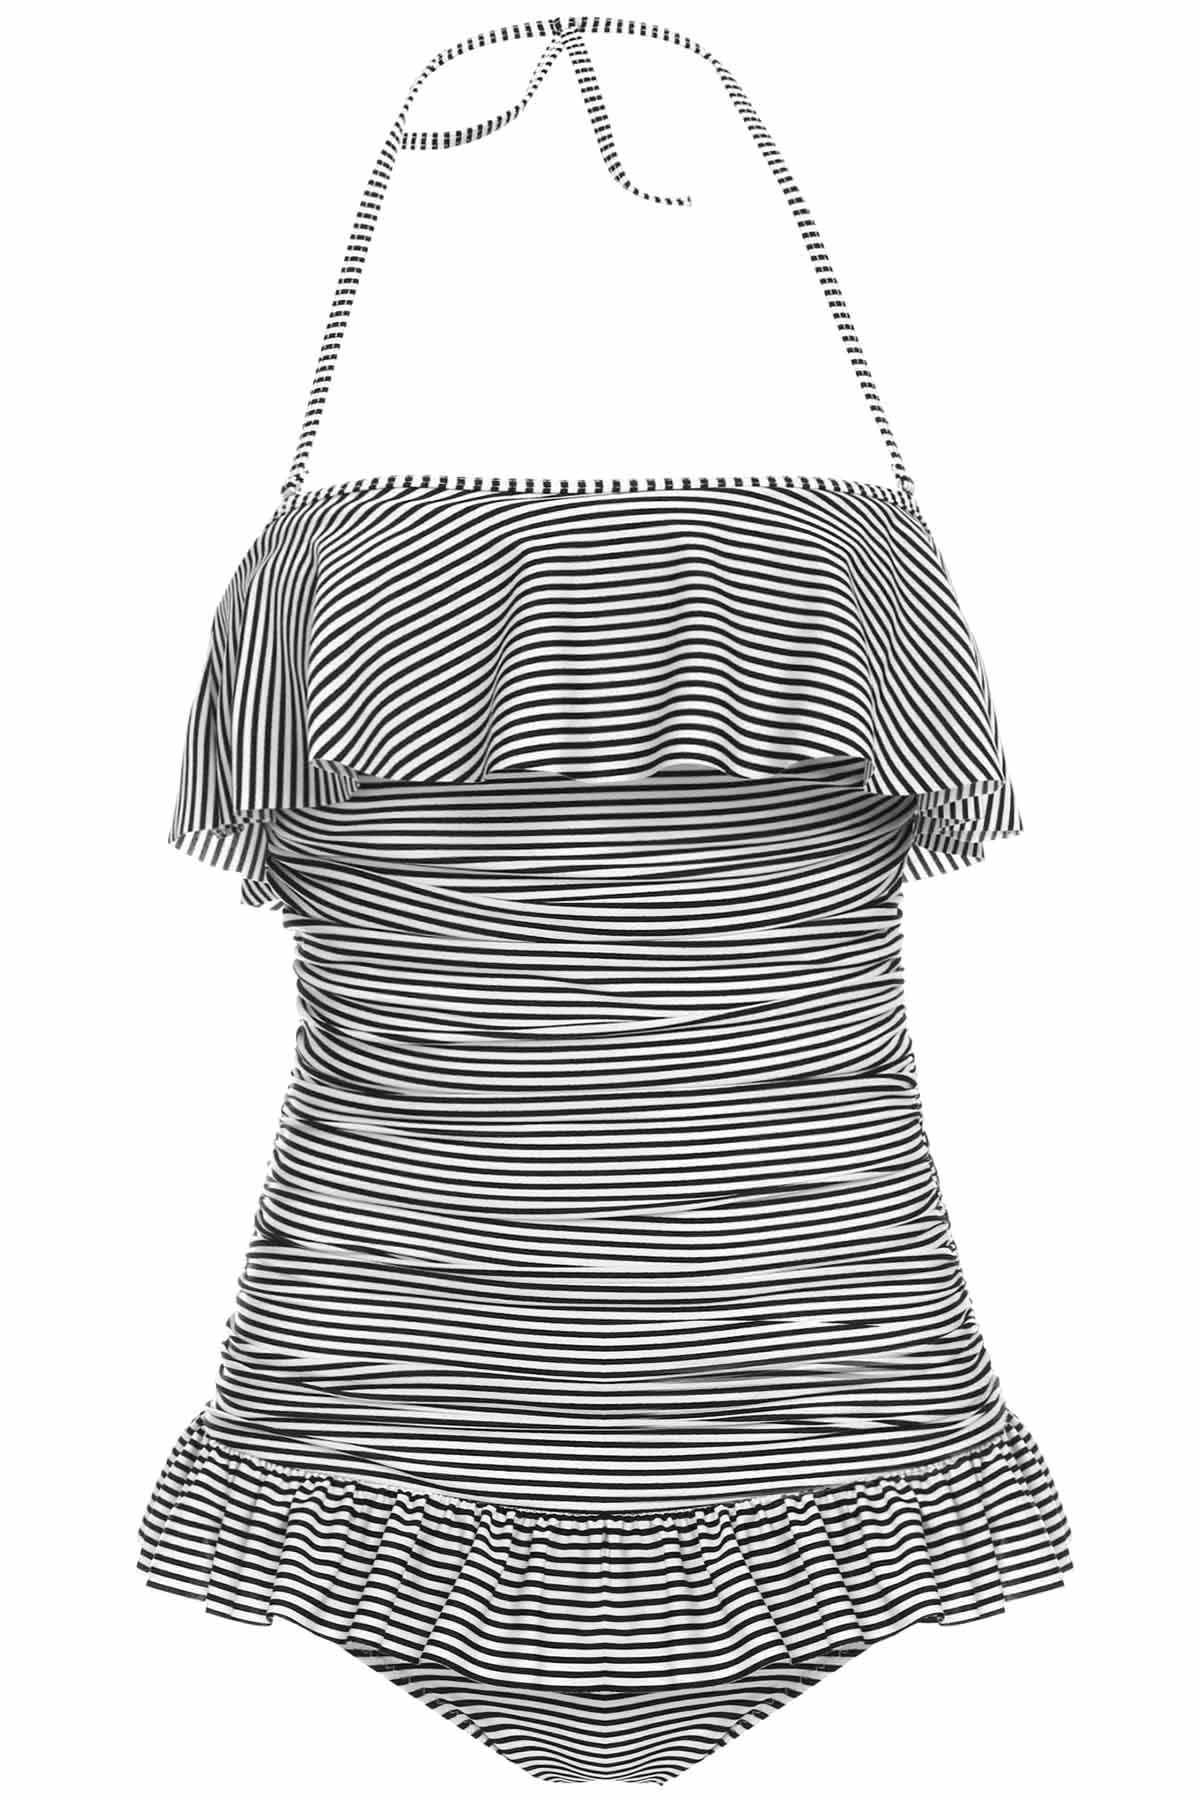 Women's Charming Stripe Ruffles Backless One Piece Swimsuit